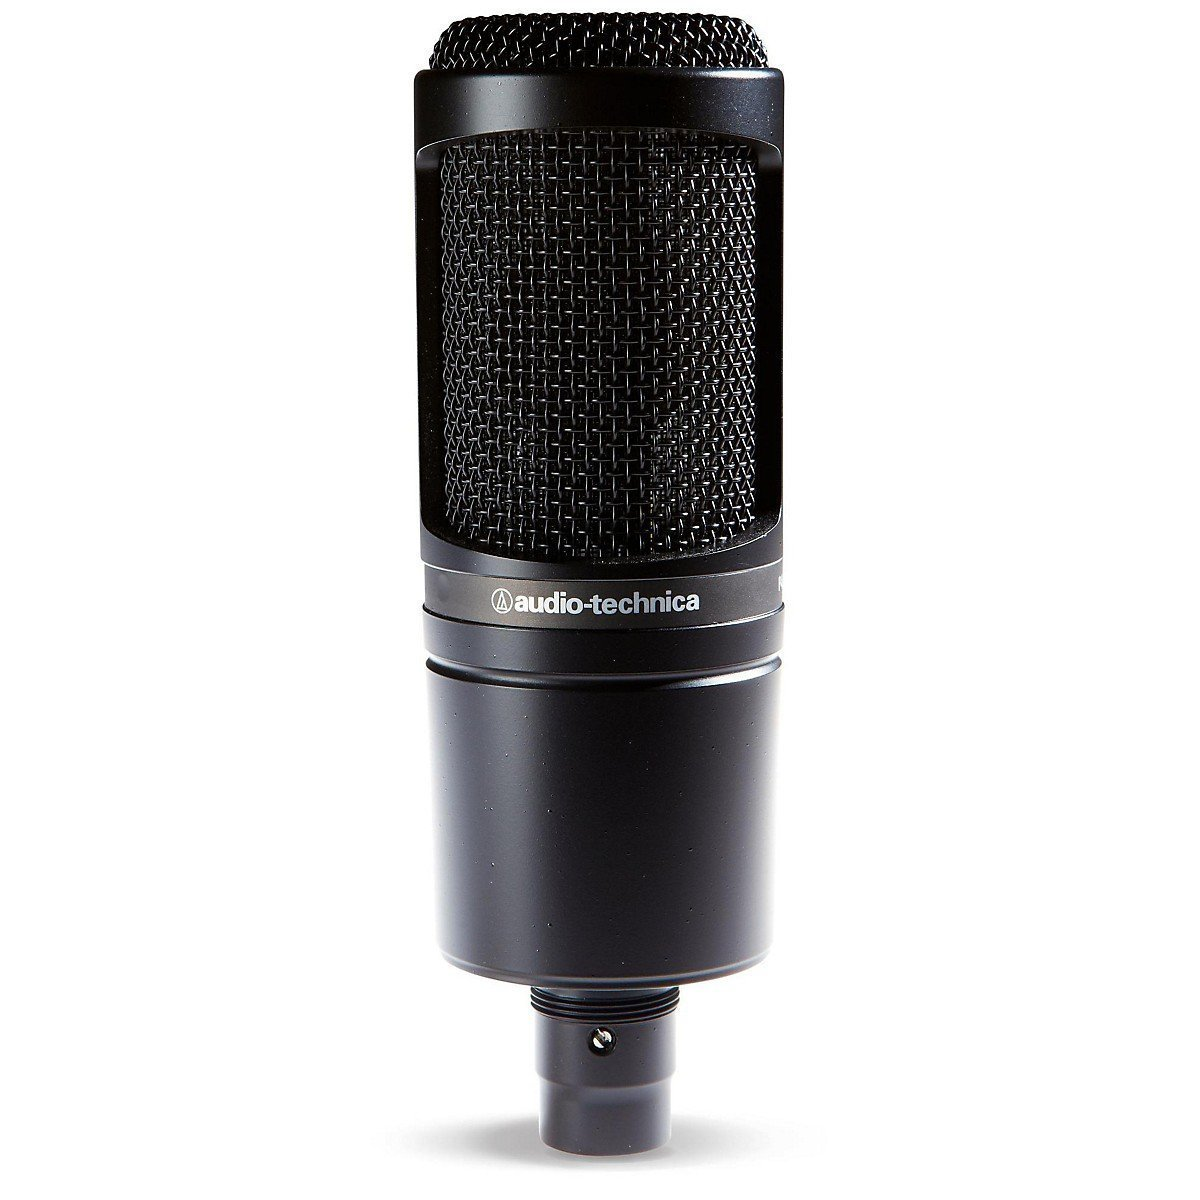 Audio-Technica AT2020 Cardioid Condenser Studio Microphone by